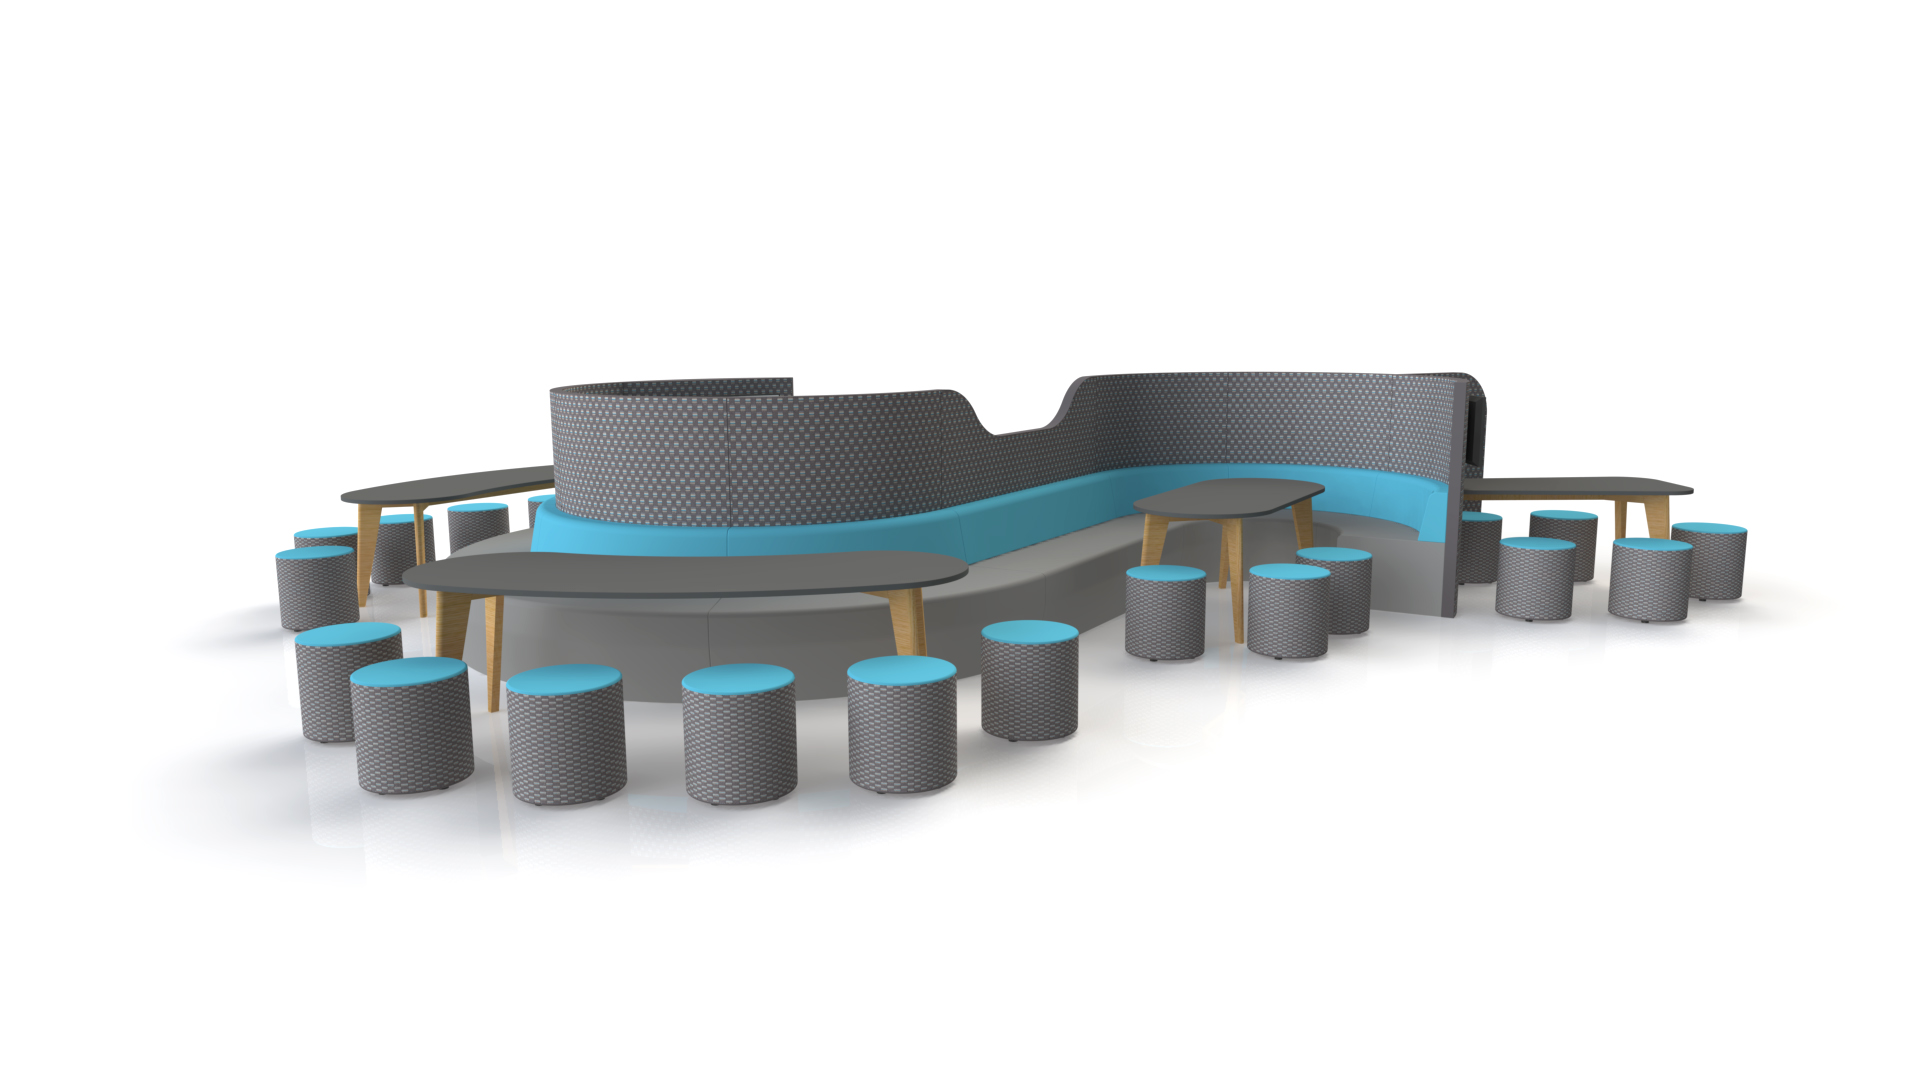 Curved Seating Meet Media v2